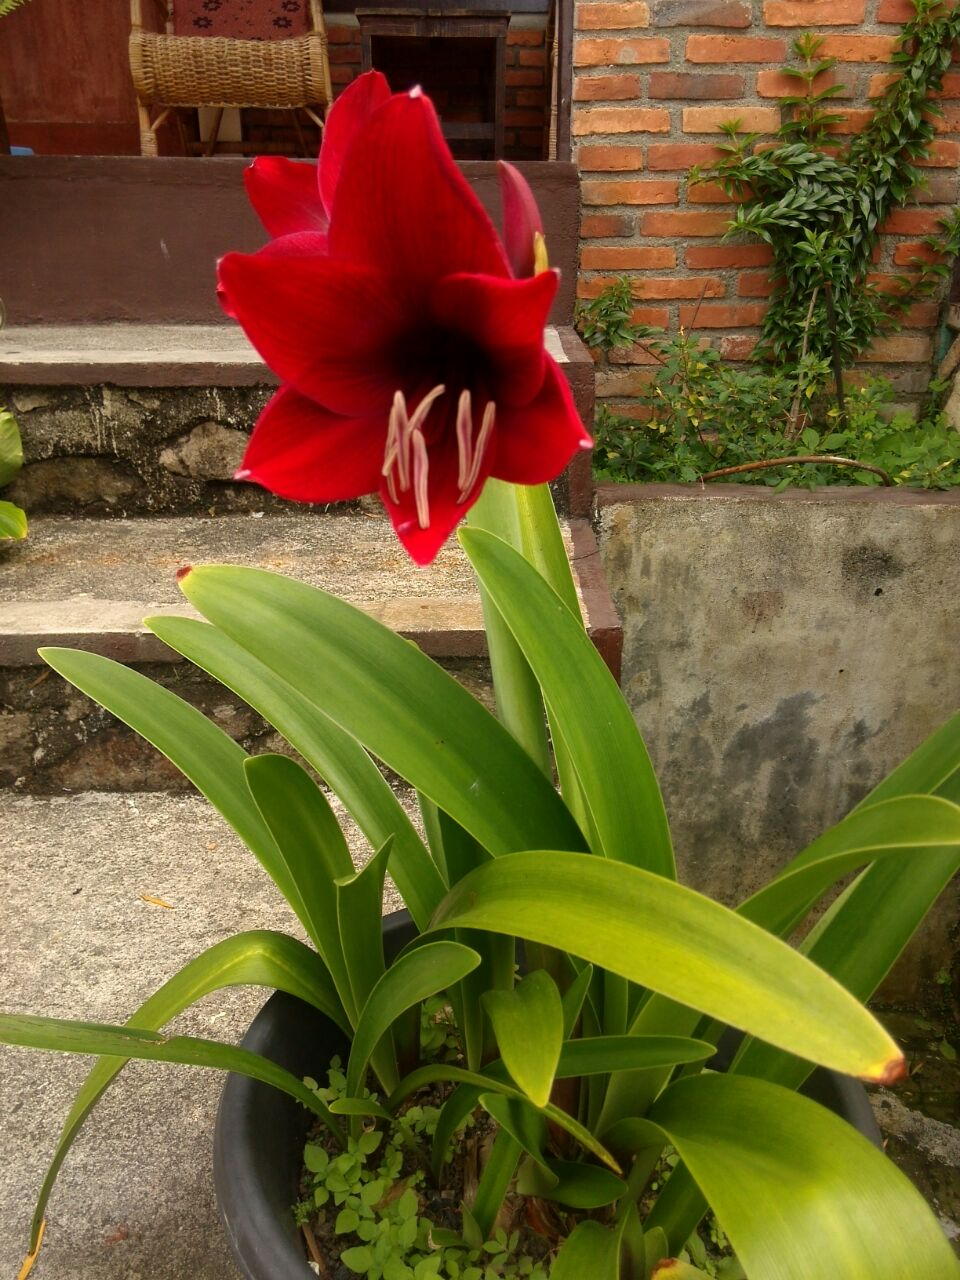 Is this a lily or bromeliad?